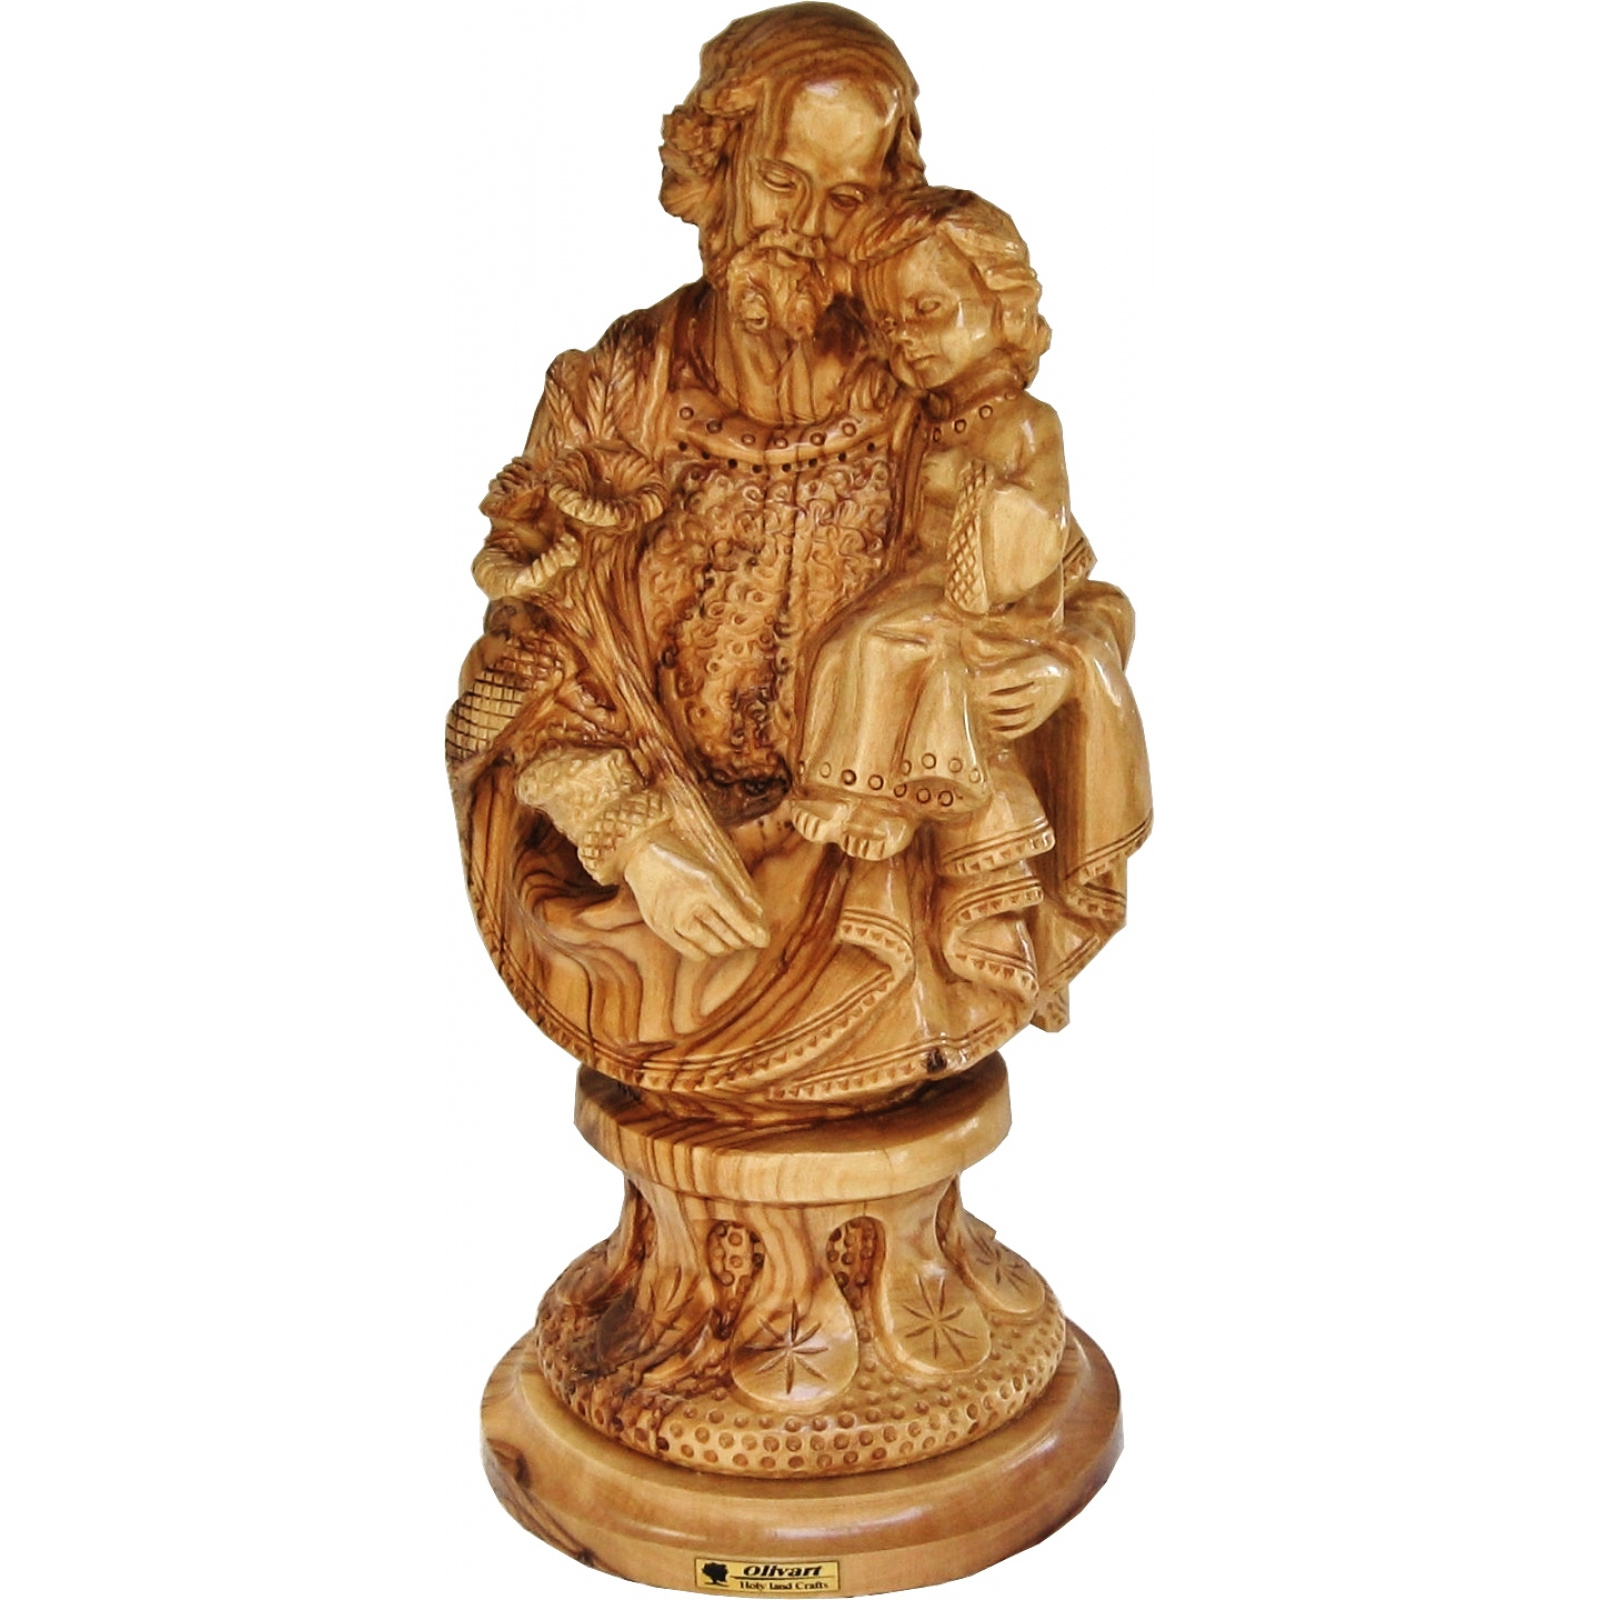 saint joseph child jesus